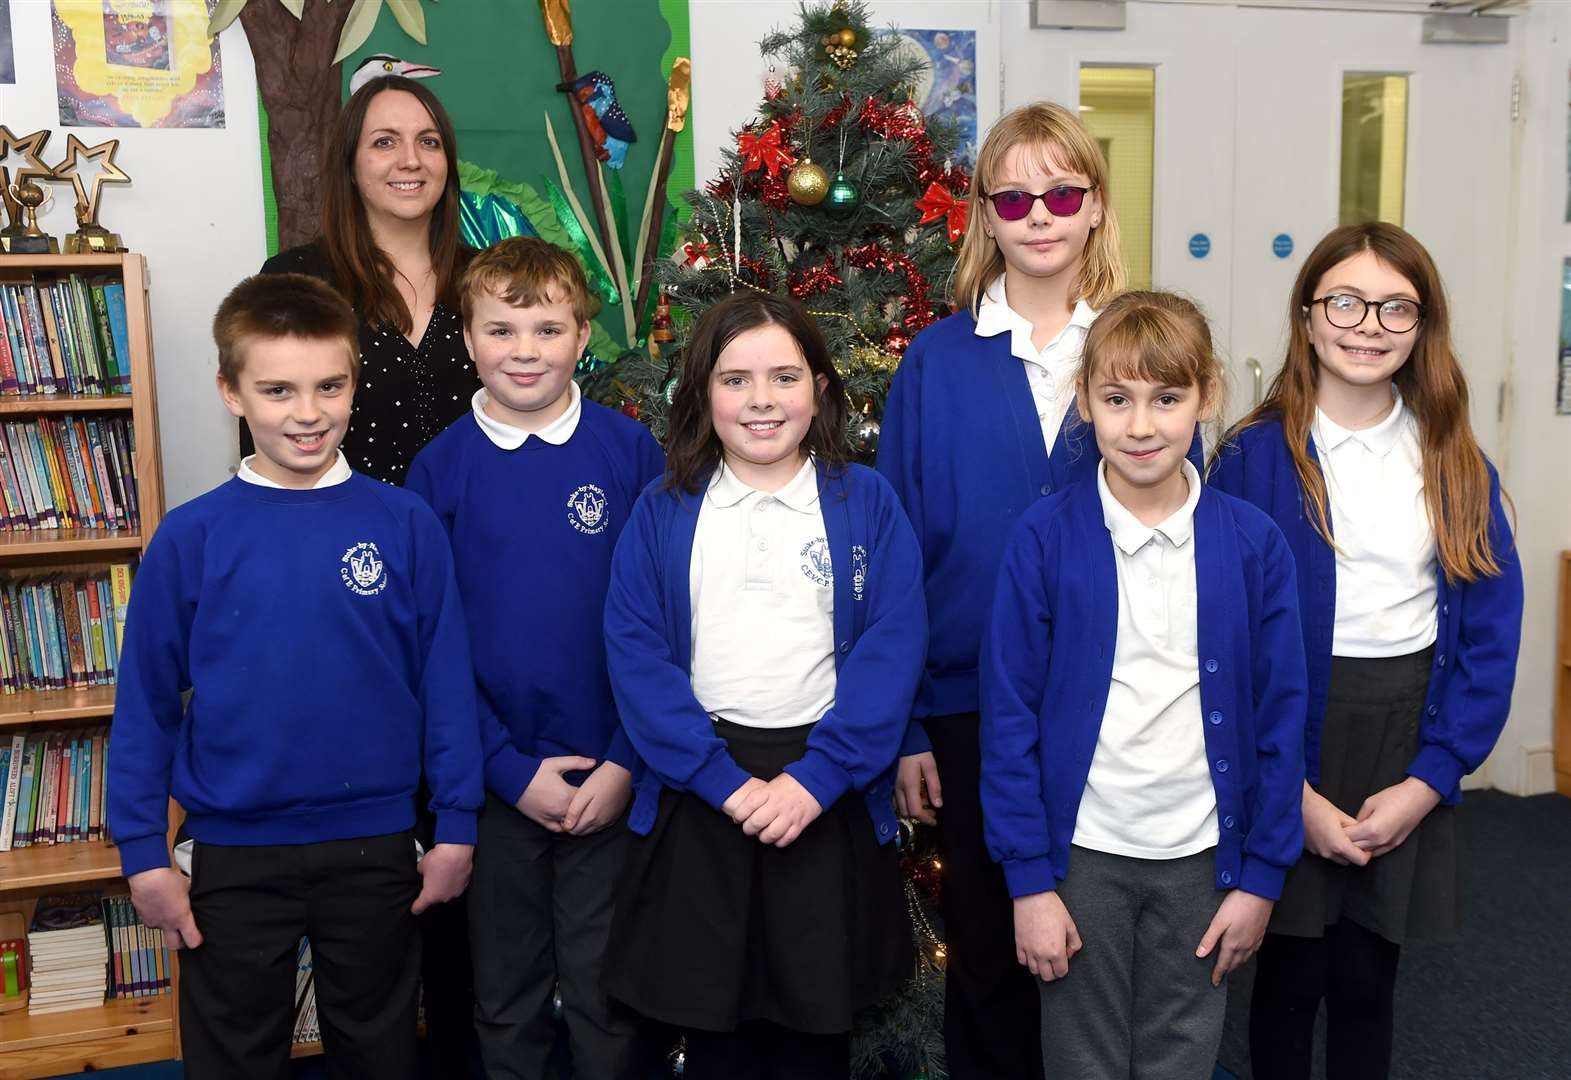 Stoke by Nayland Primary School raises over £500 at festive fair to help boost learning facilities